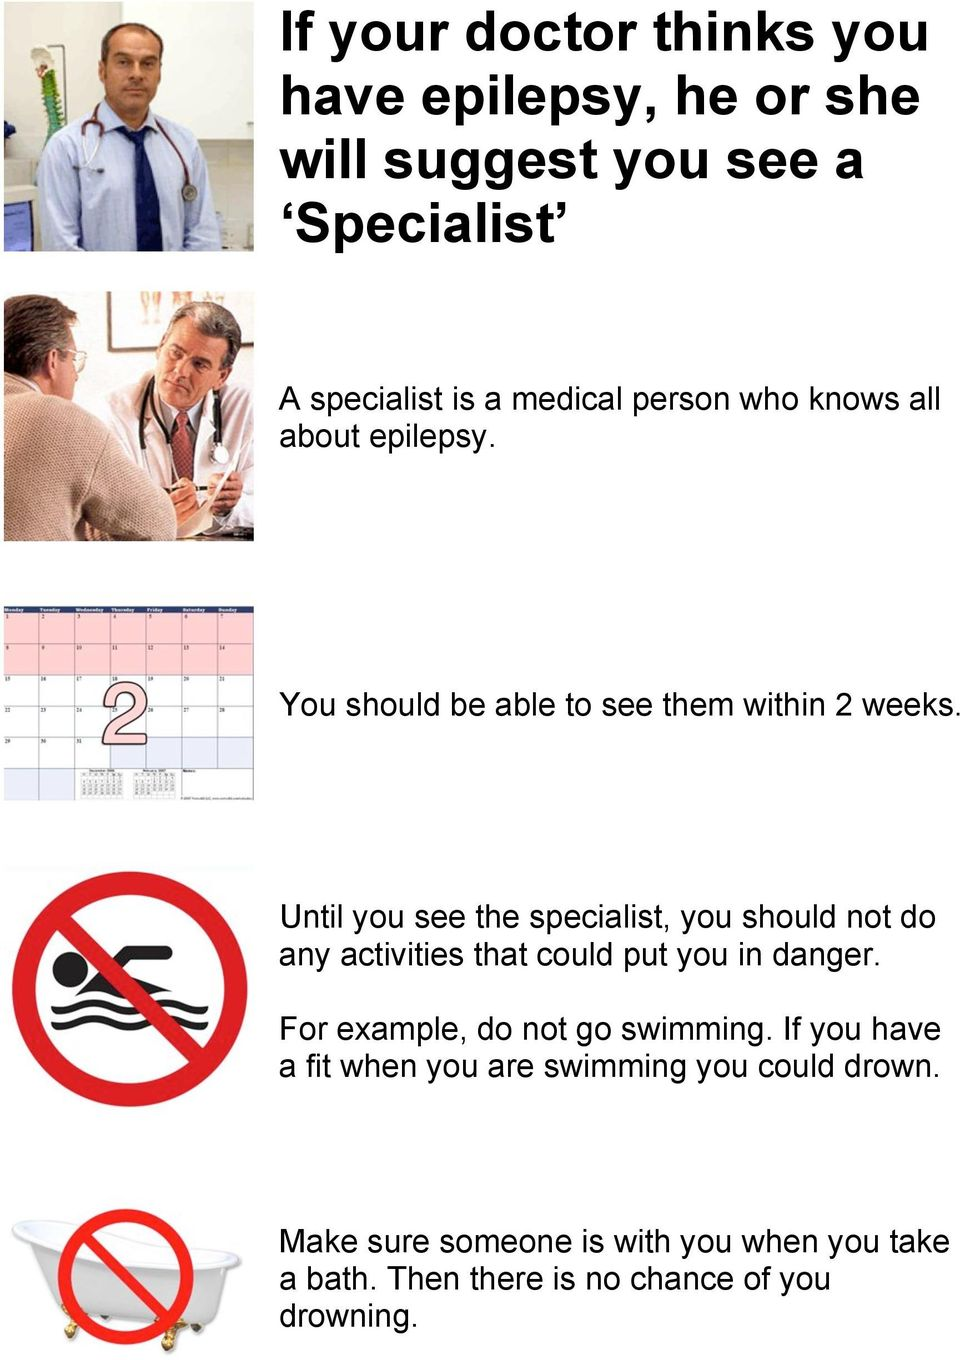 Until you see the specialist, you should not do any activities that could put you in danger.